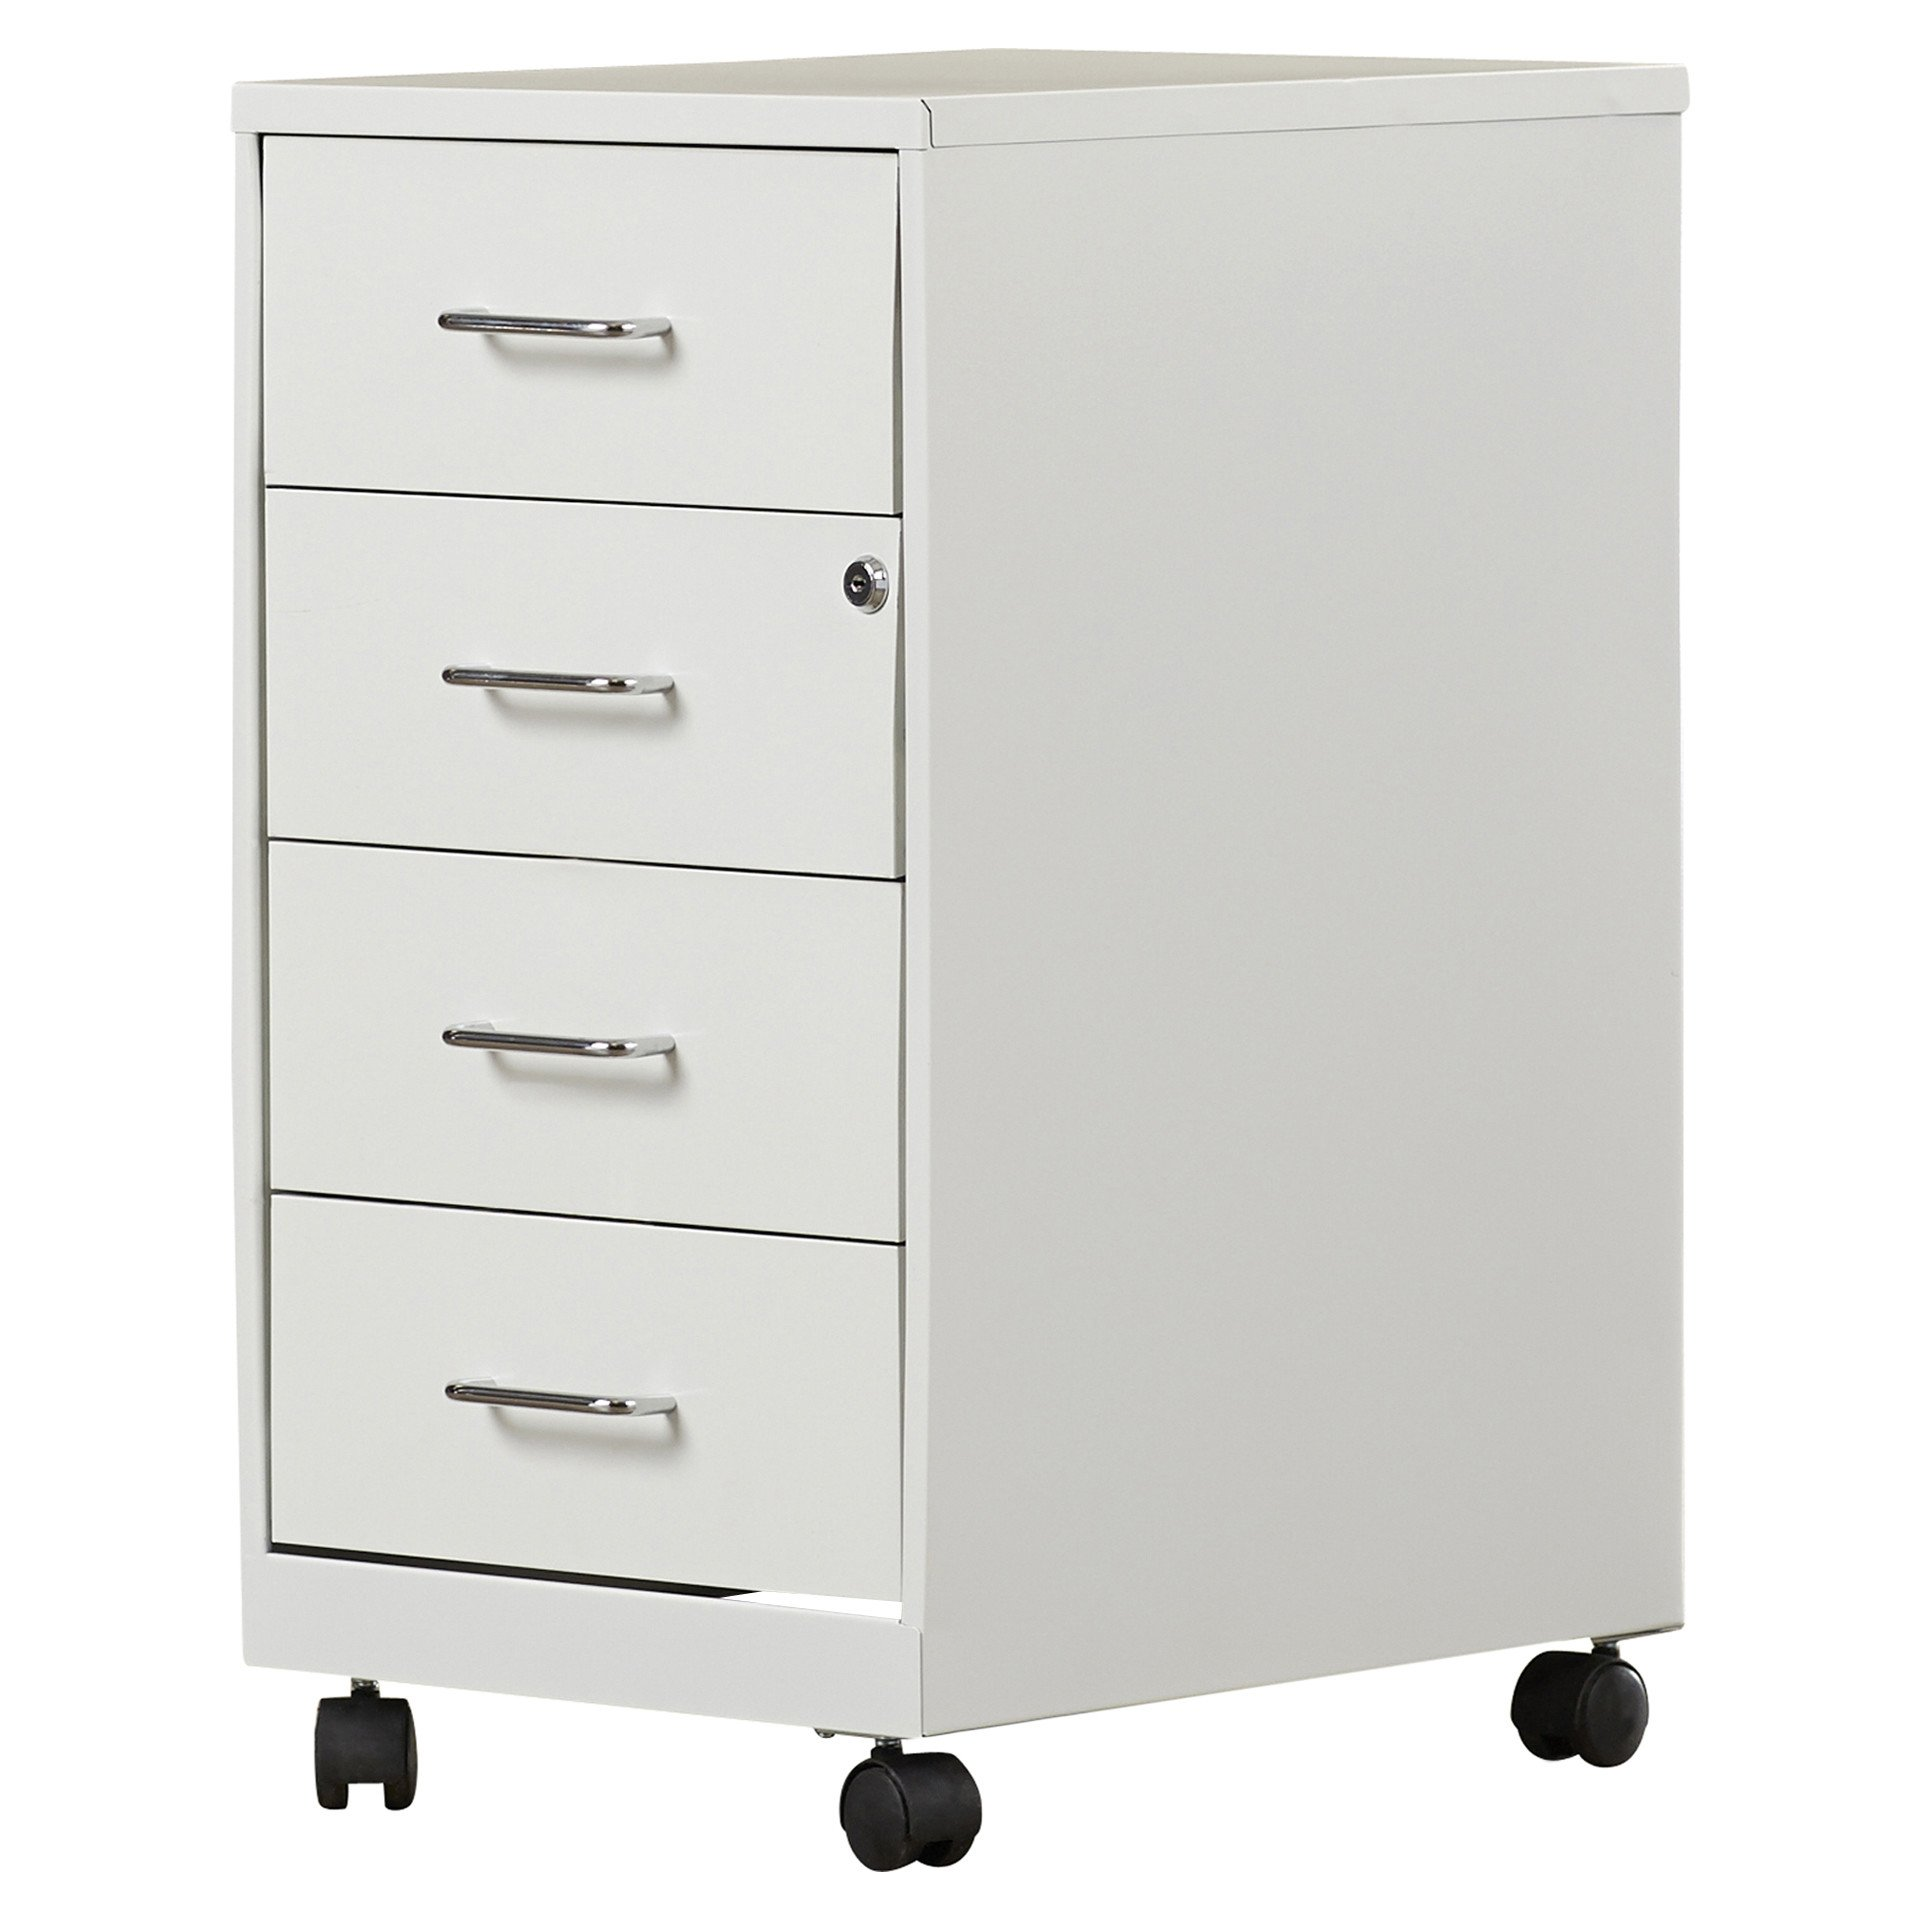 4 Drawer Mobile File Cabinet Made w/ Metal in Pearl White and Chrome Finish 26.5'' H x 14.25'' W x 18'' D in.